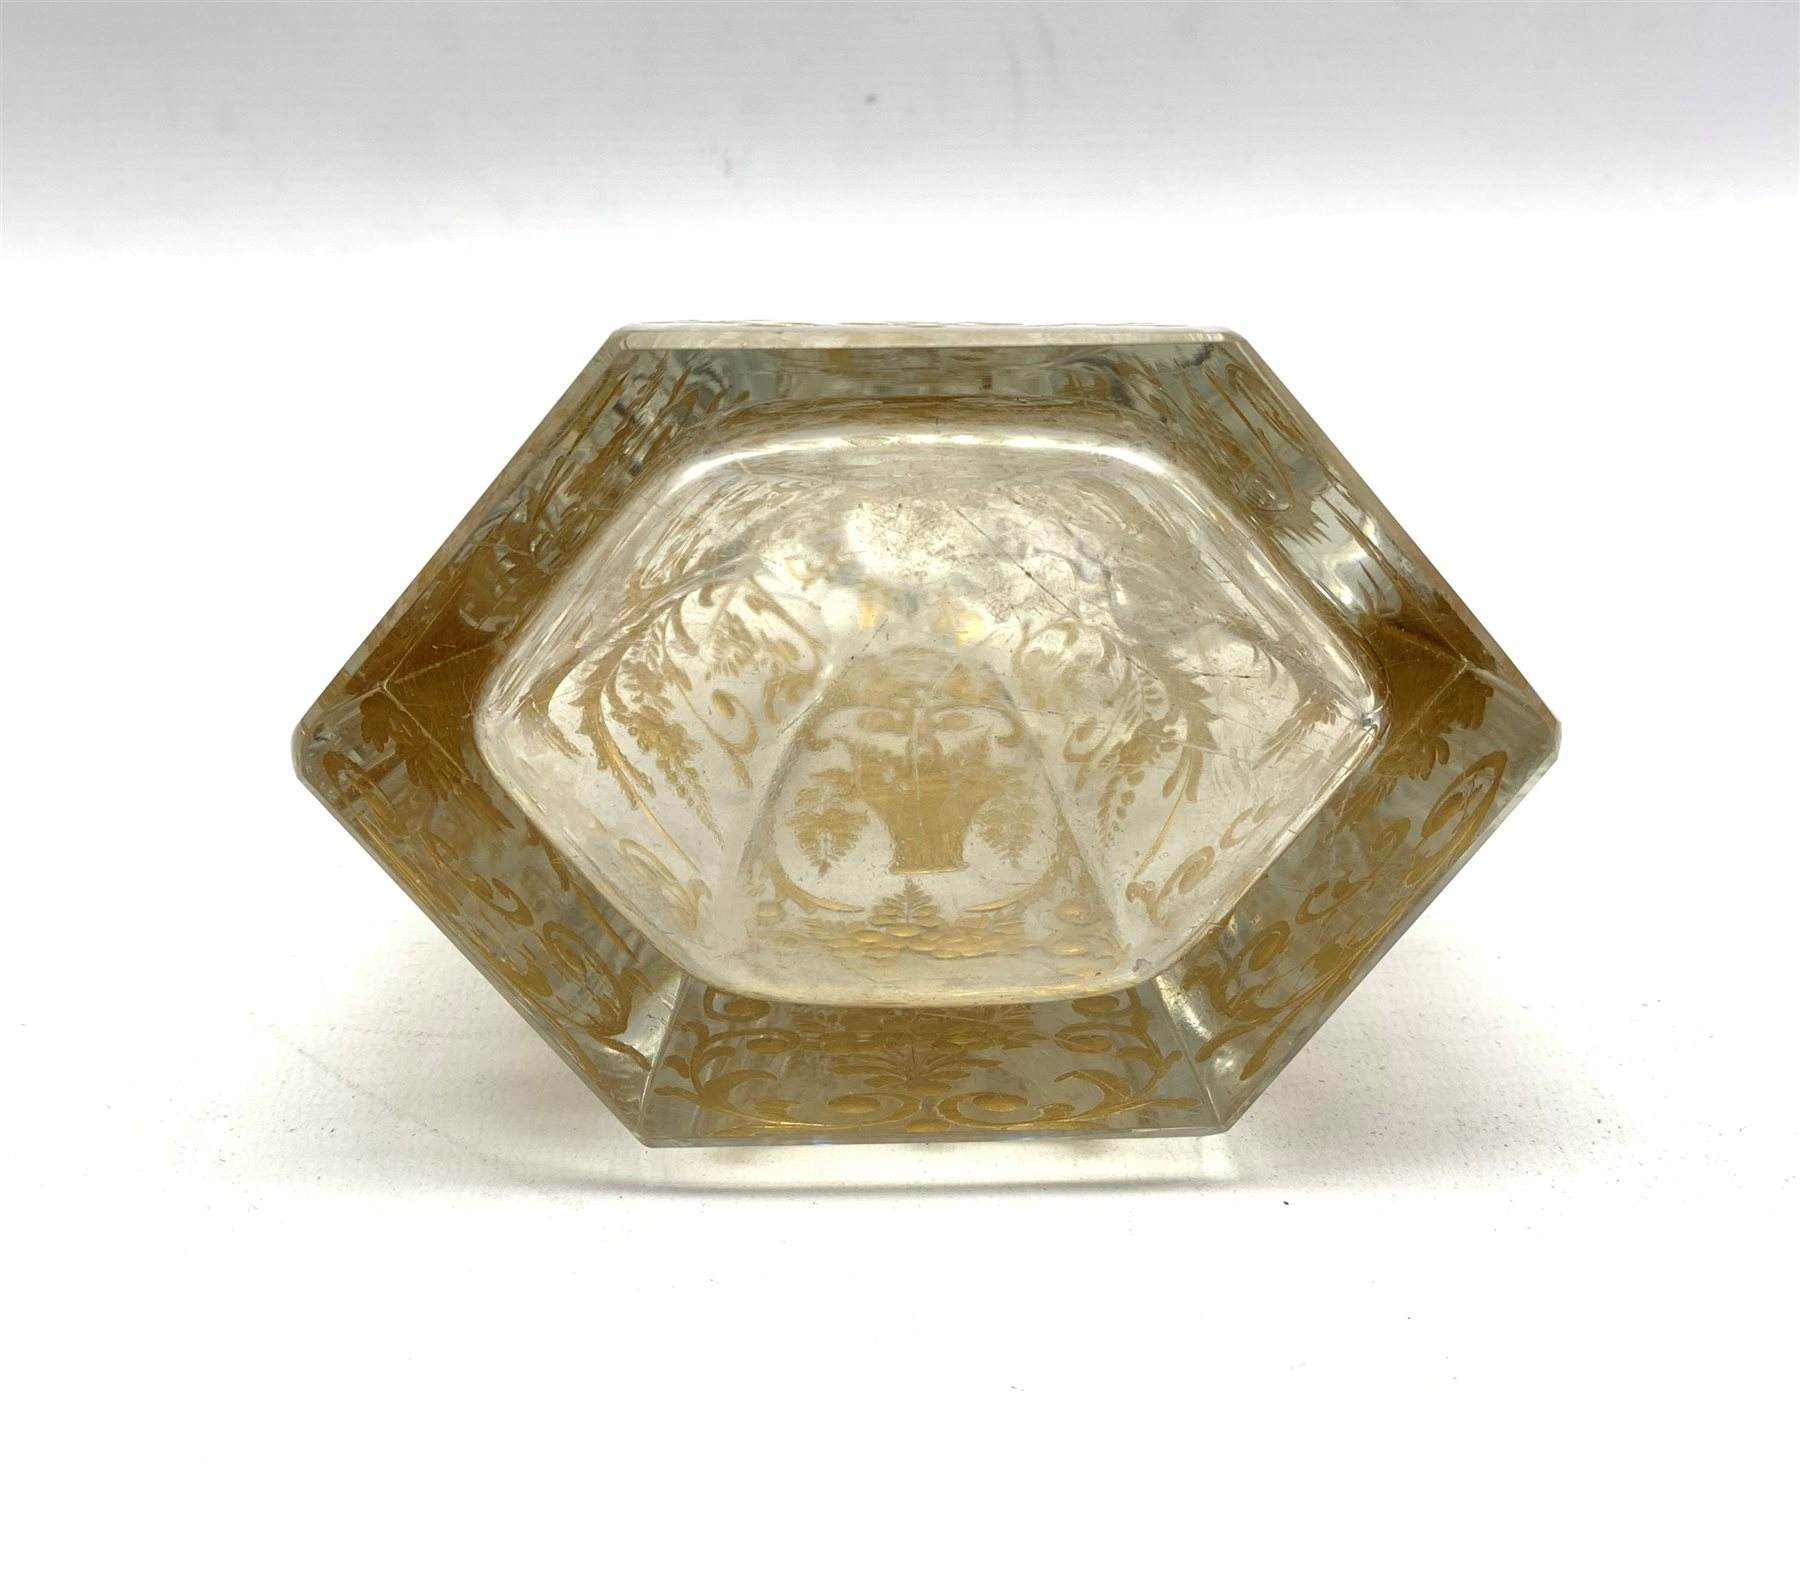 Early 20th century French glass claret jug of hexagonal design incised and gilded with trailing foli - Image 3 of 7